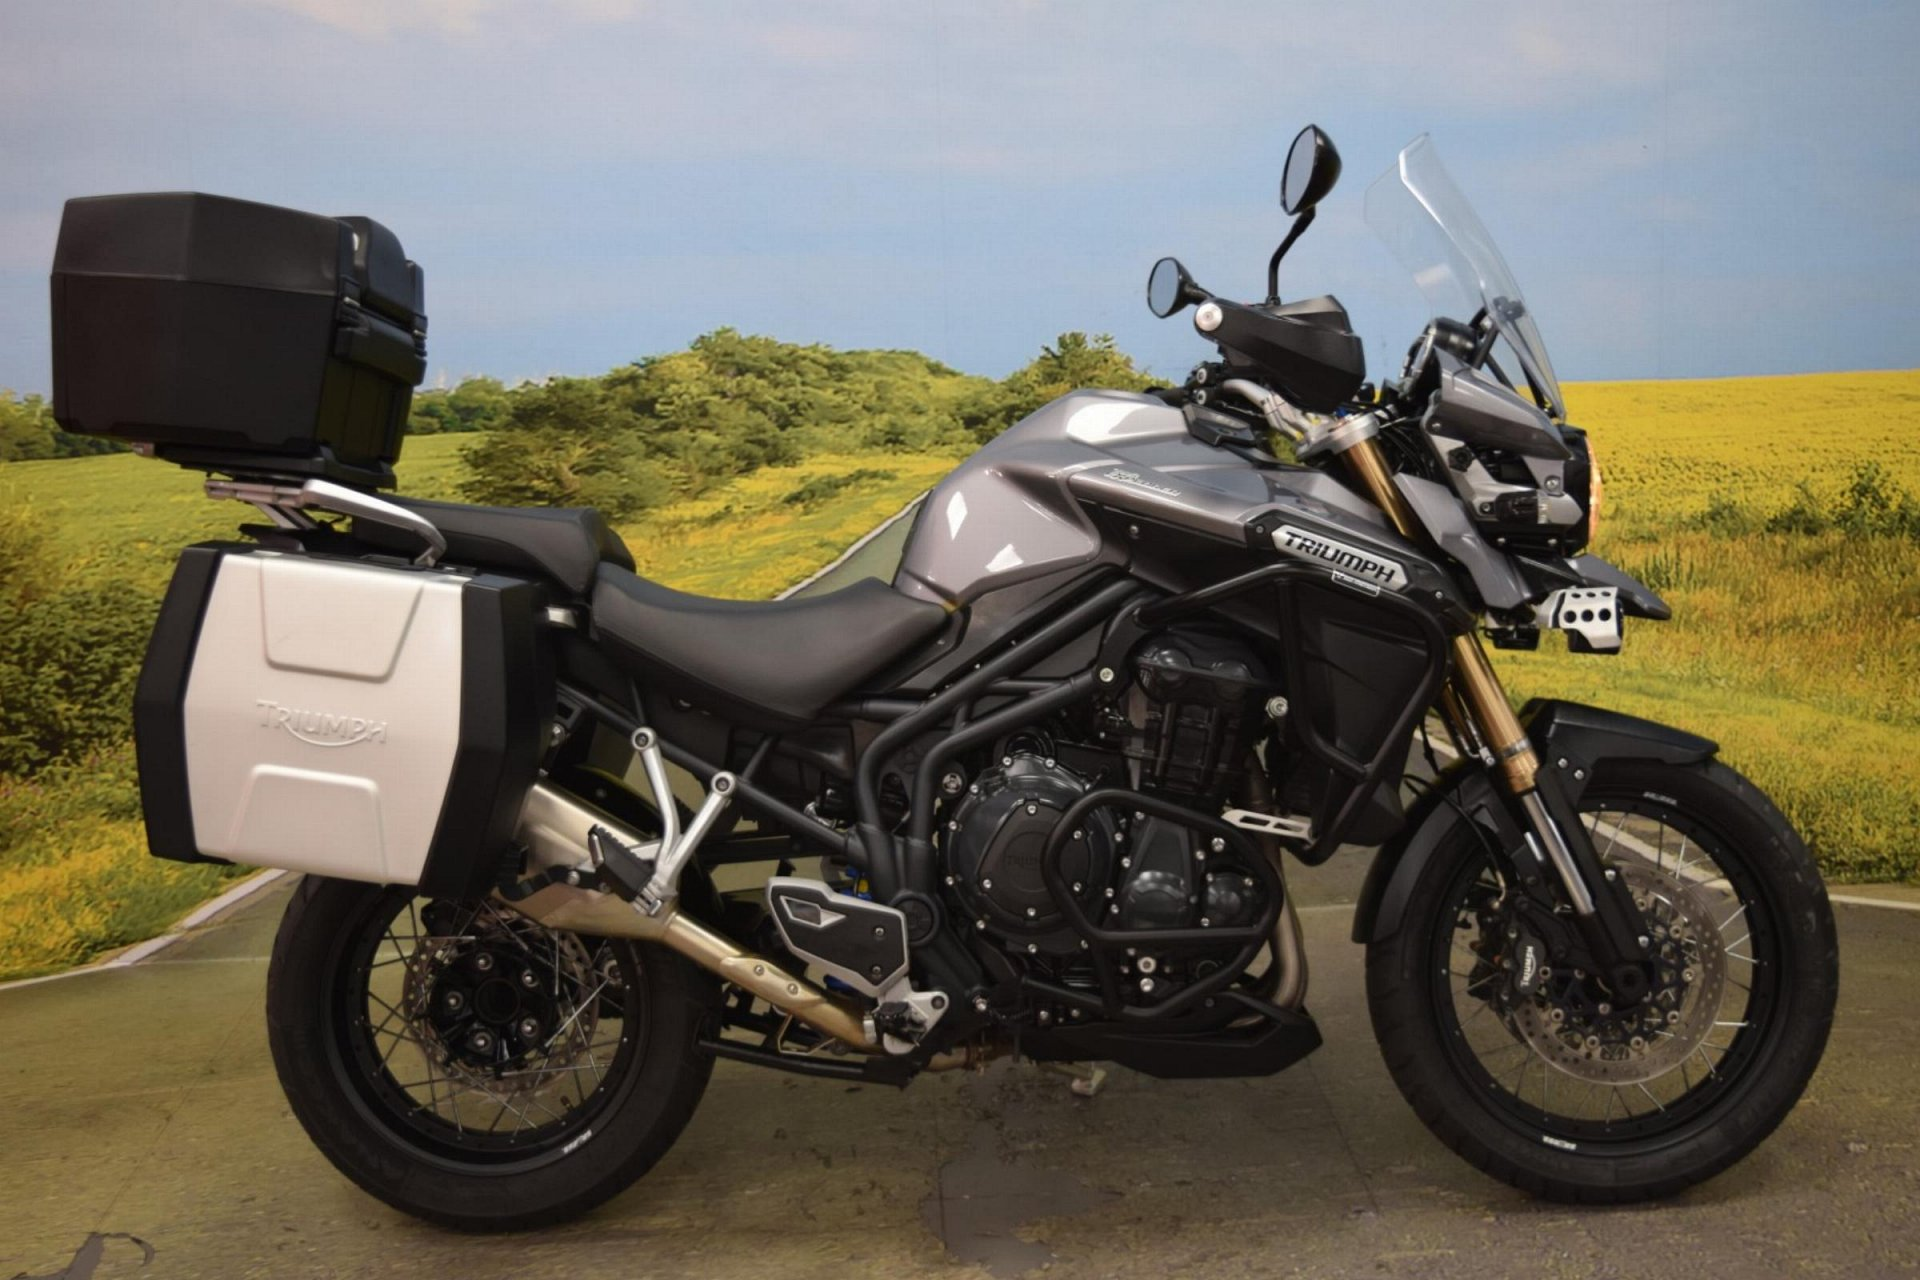 2013 Triumph Tiger Explorer 1200 for sale in Staffordshire